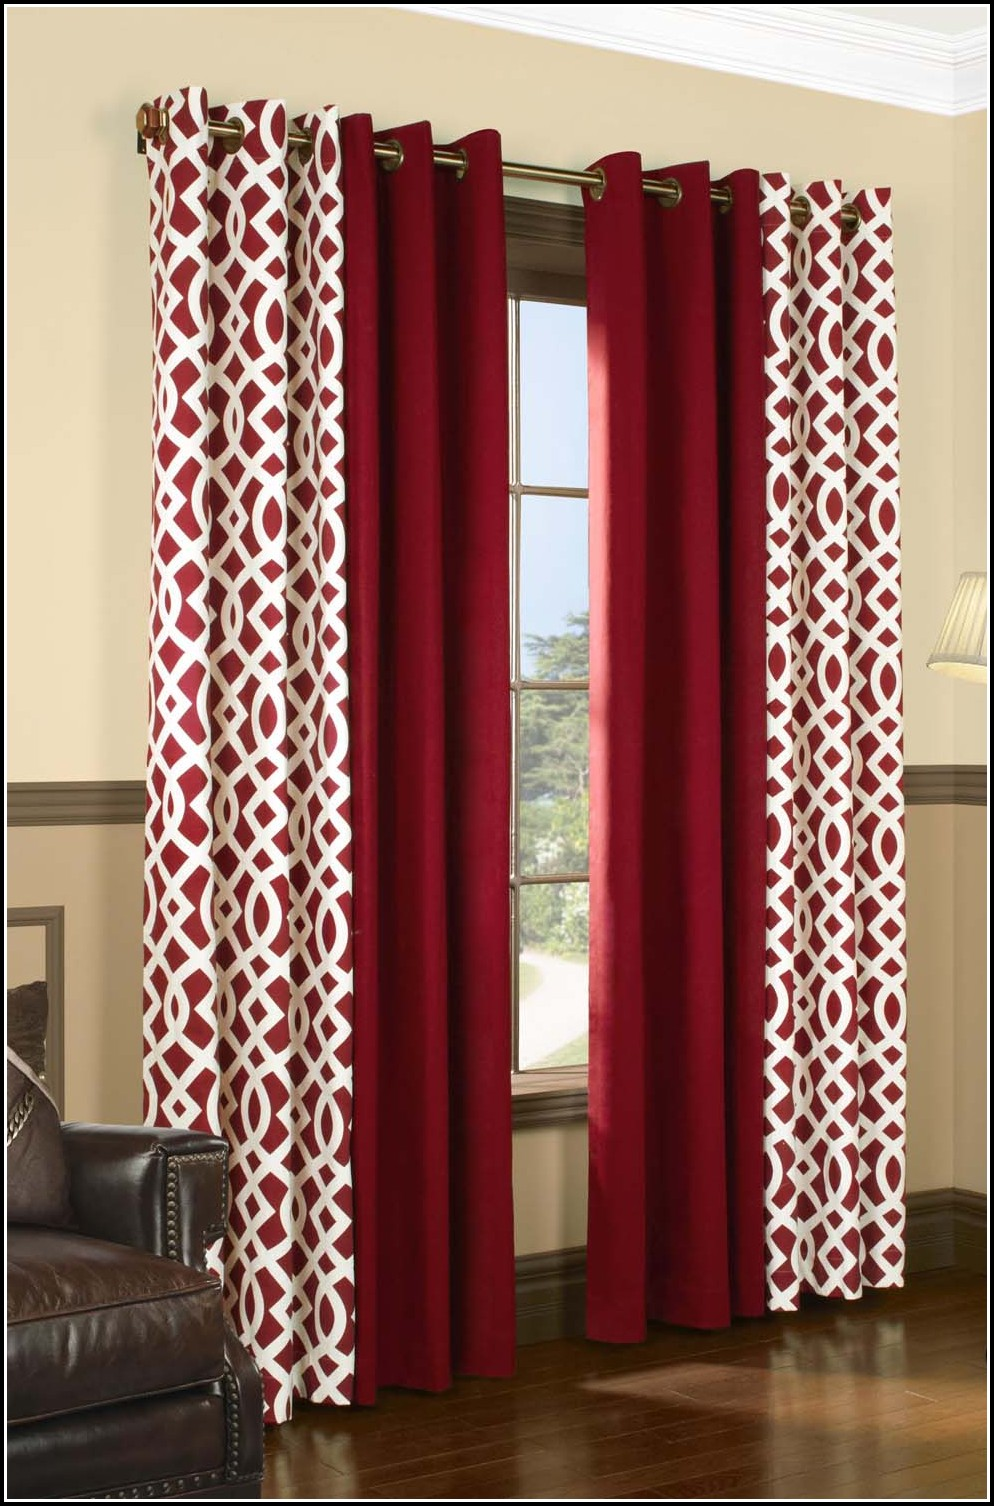 Creative modern red curtain ideas and designs to inspire you - Curtains designs images ...